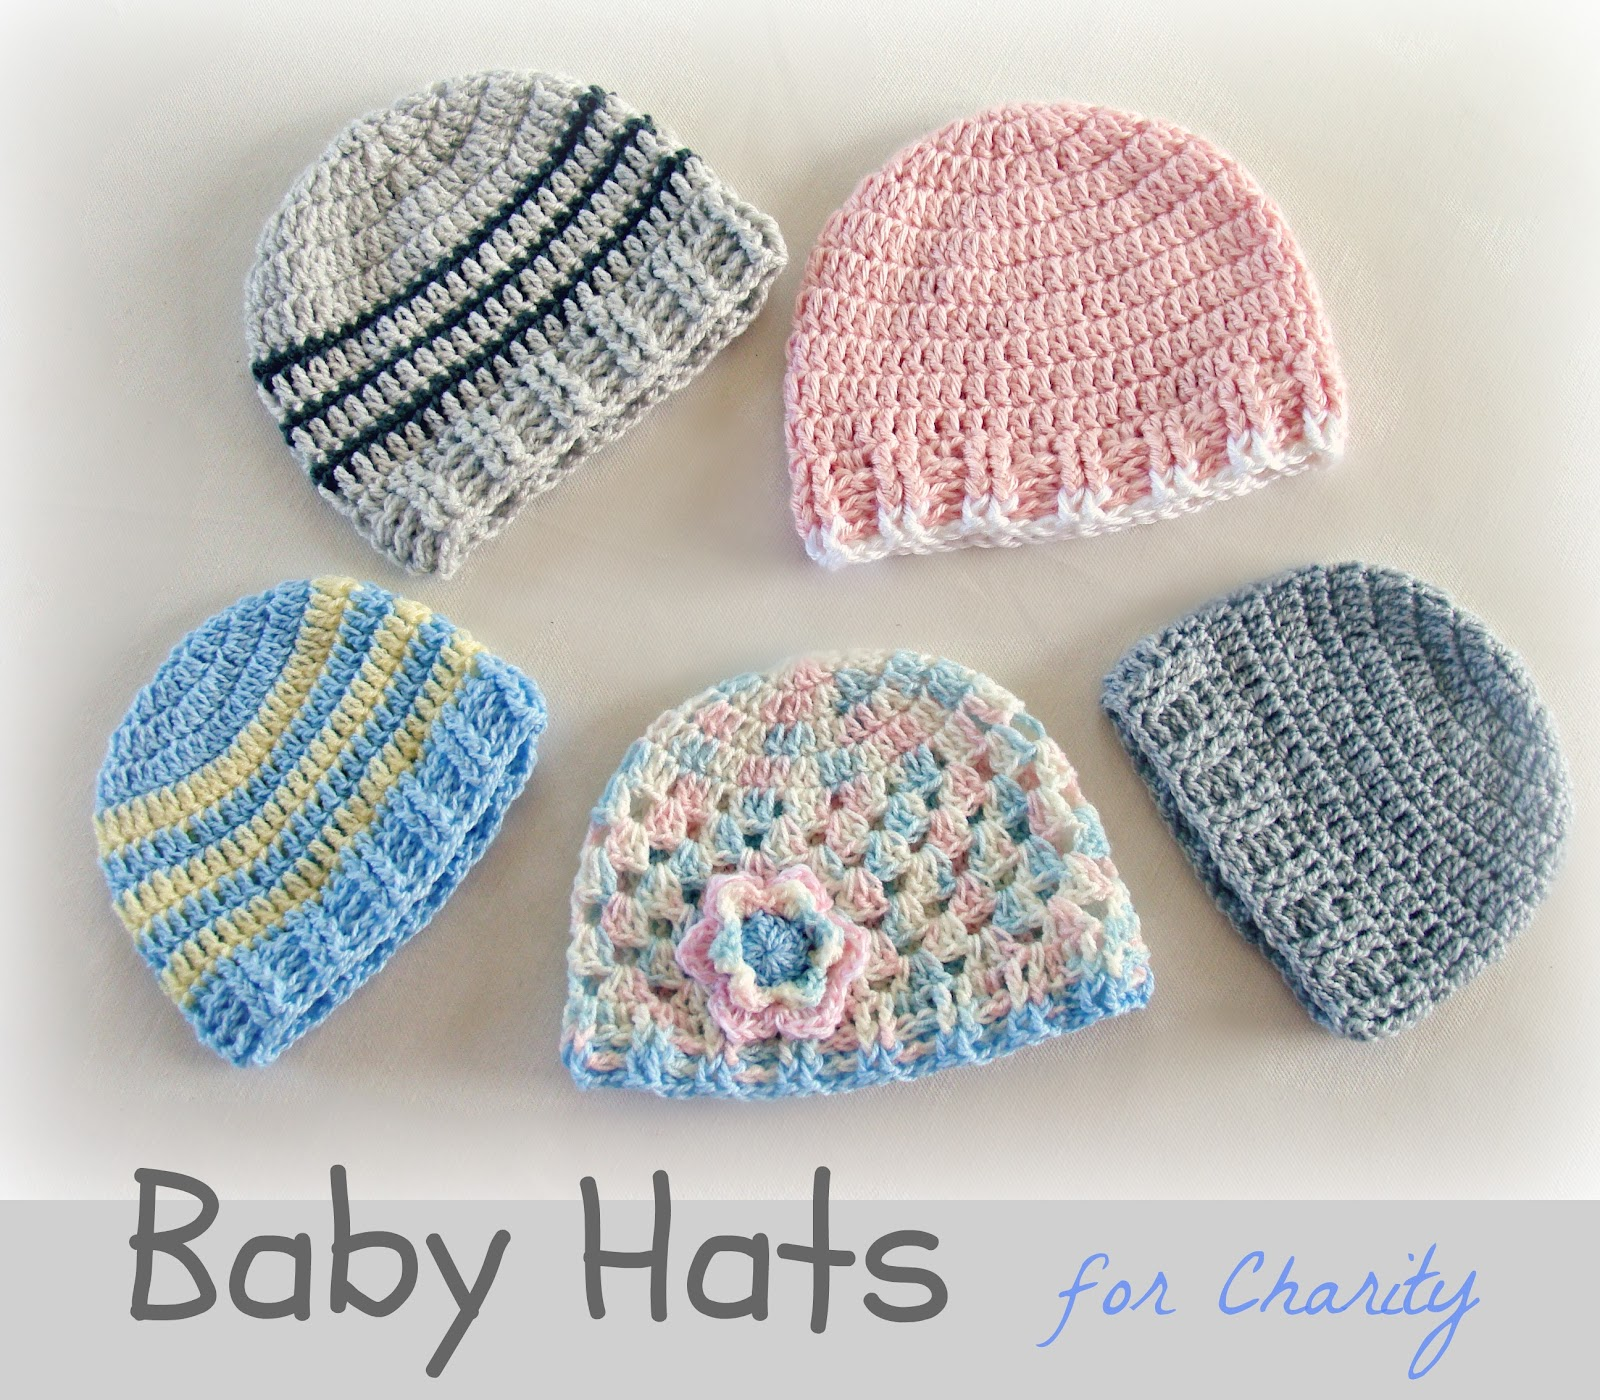 Lanas Hilos: HATS for Charity